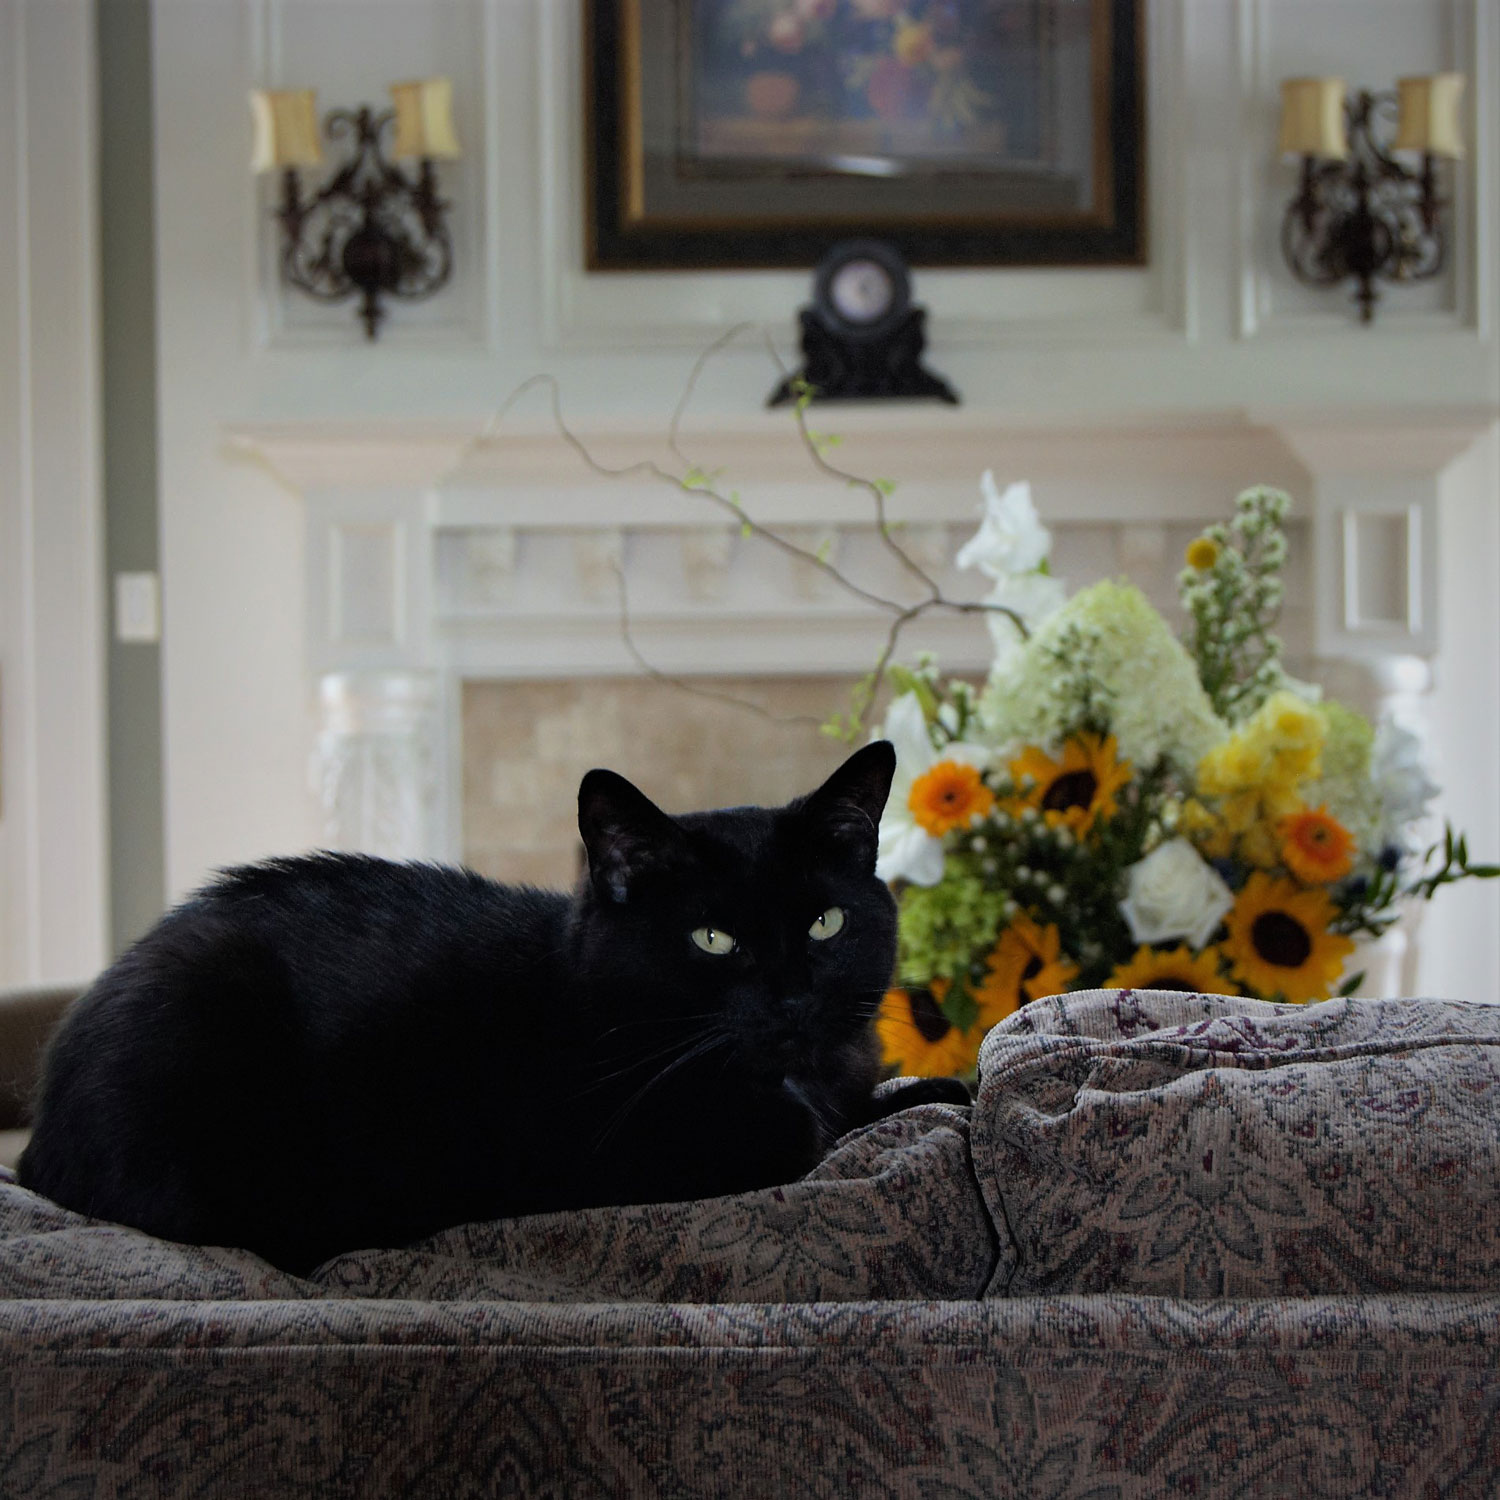 A bombay cat sitting on the couch with flowers on the background